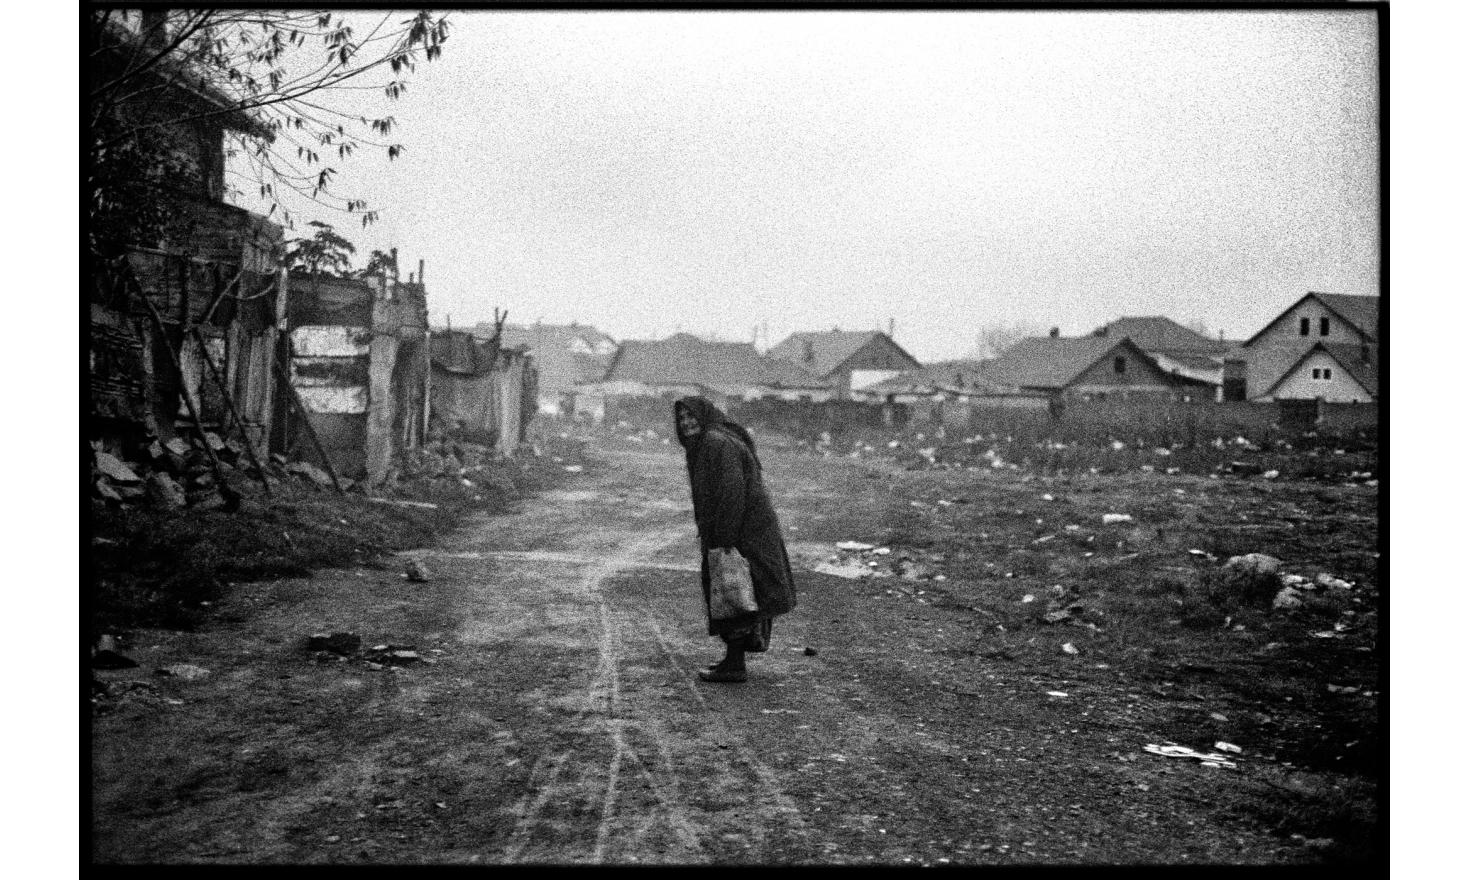 In Kosovo Polje, next to the train station, Ashkalis and Roma people are living in precarious conditions. November 2008.